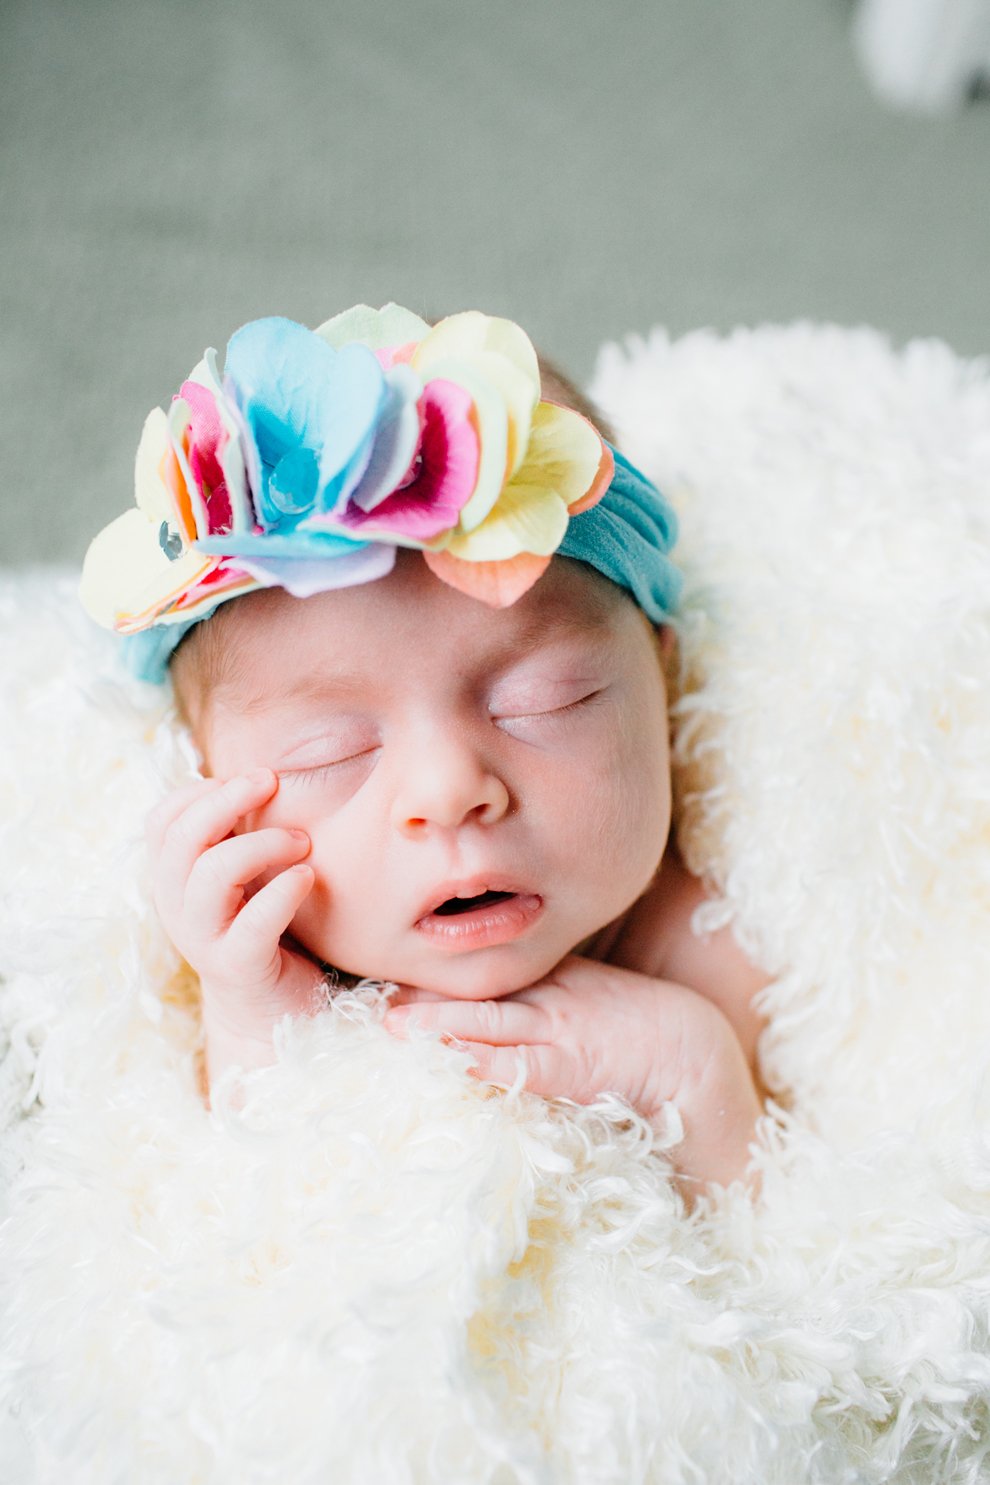 016-bellingham-newborn-photographer-photo-nursery-harper-lifestyle-session.jpg